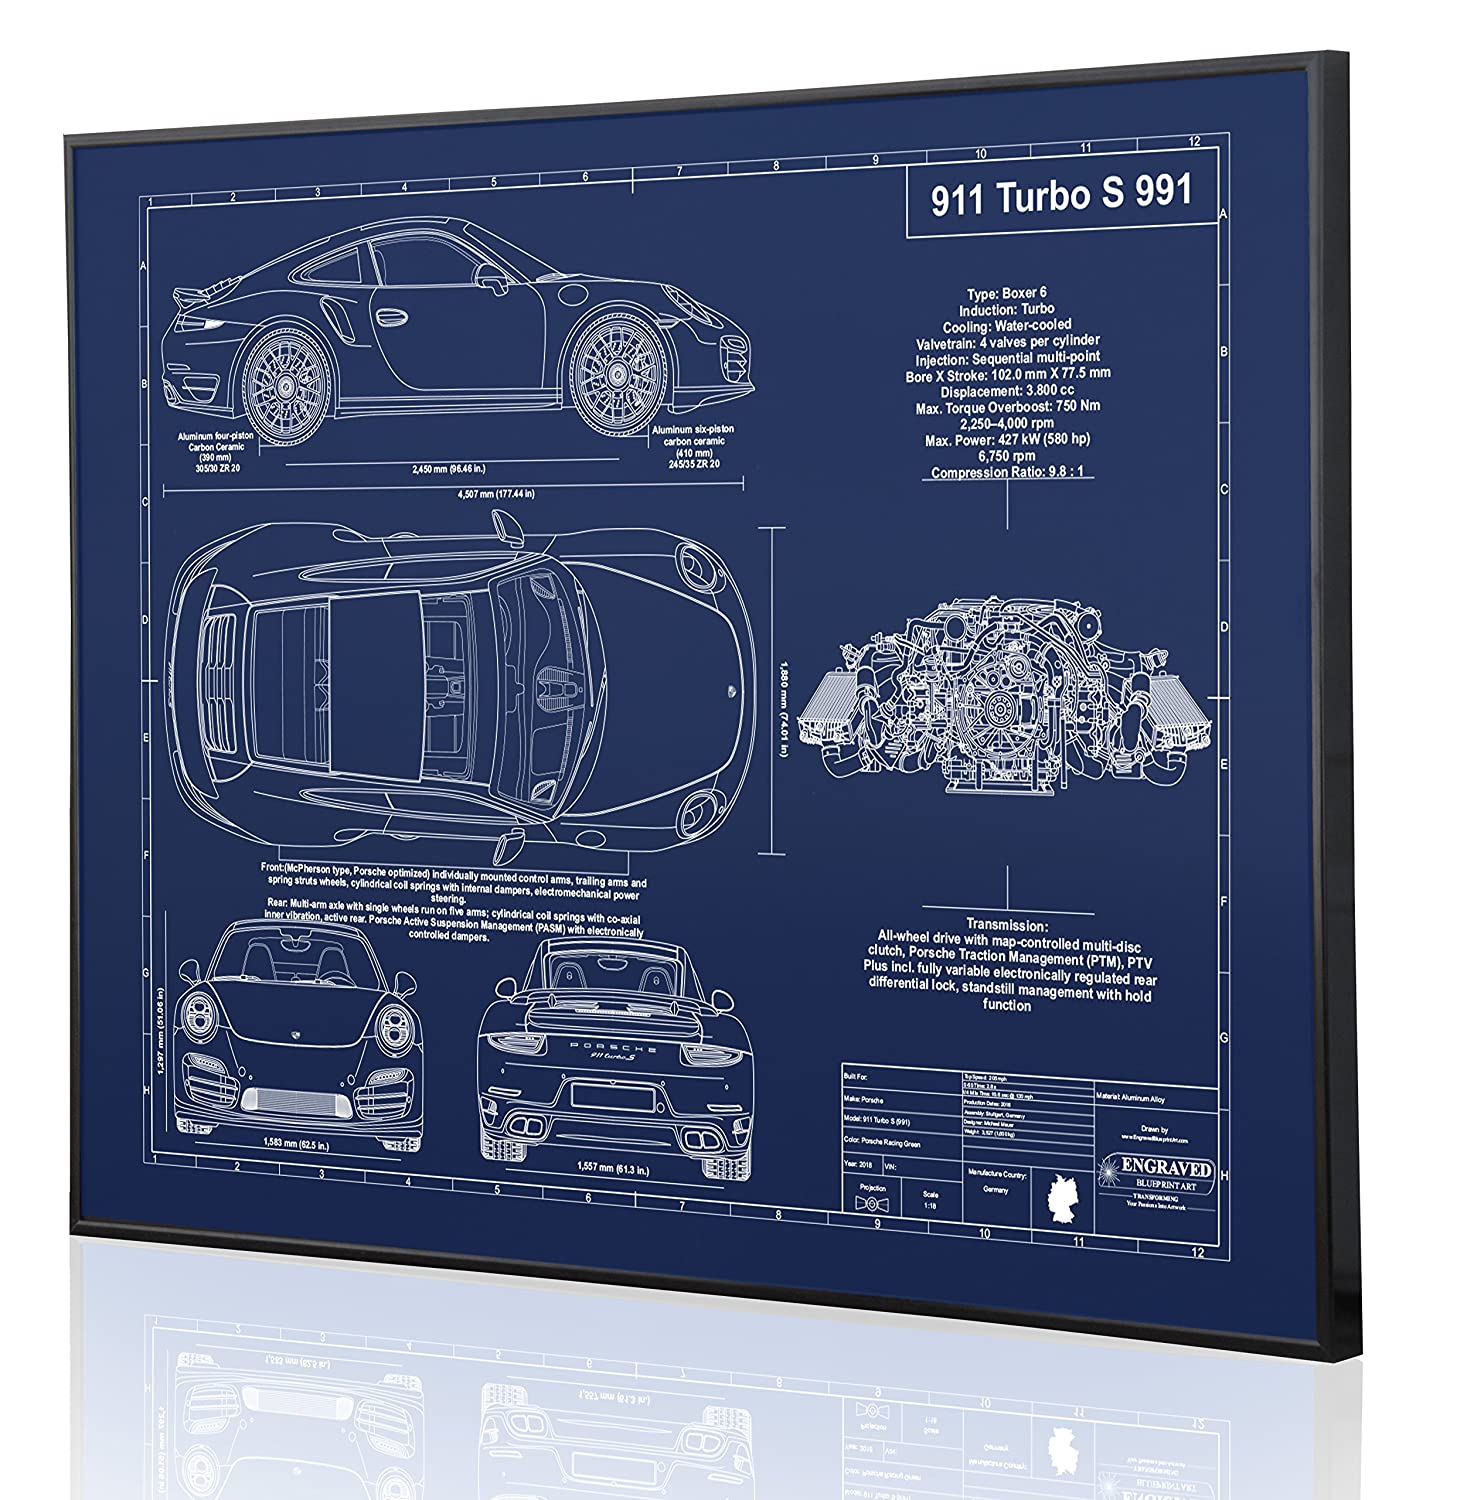 Amazon.com: Porsche 991 911 Turbo S Blueprint Artwork-Laser Marked & Personalized-The Perfect Porsche Gifts: Handmade